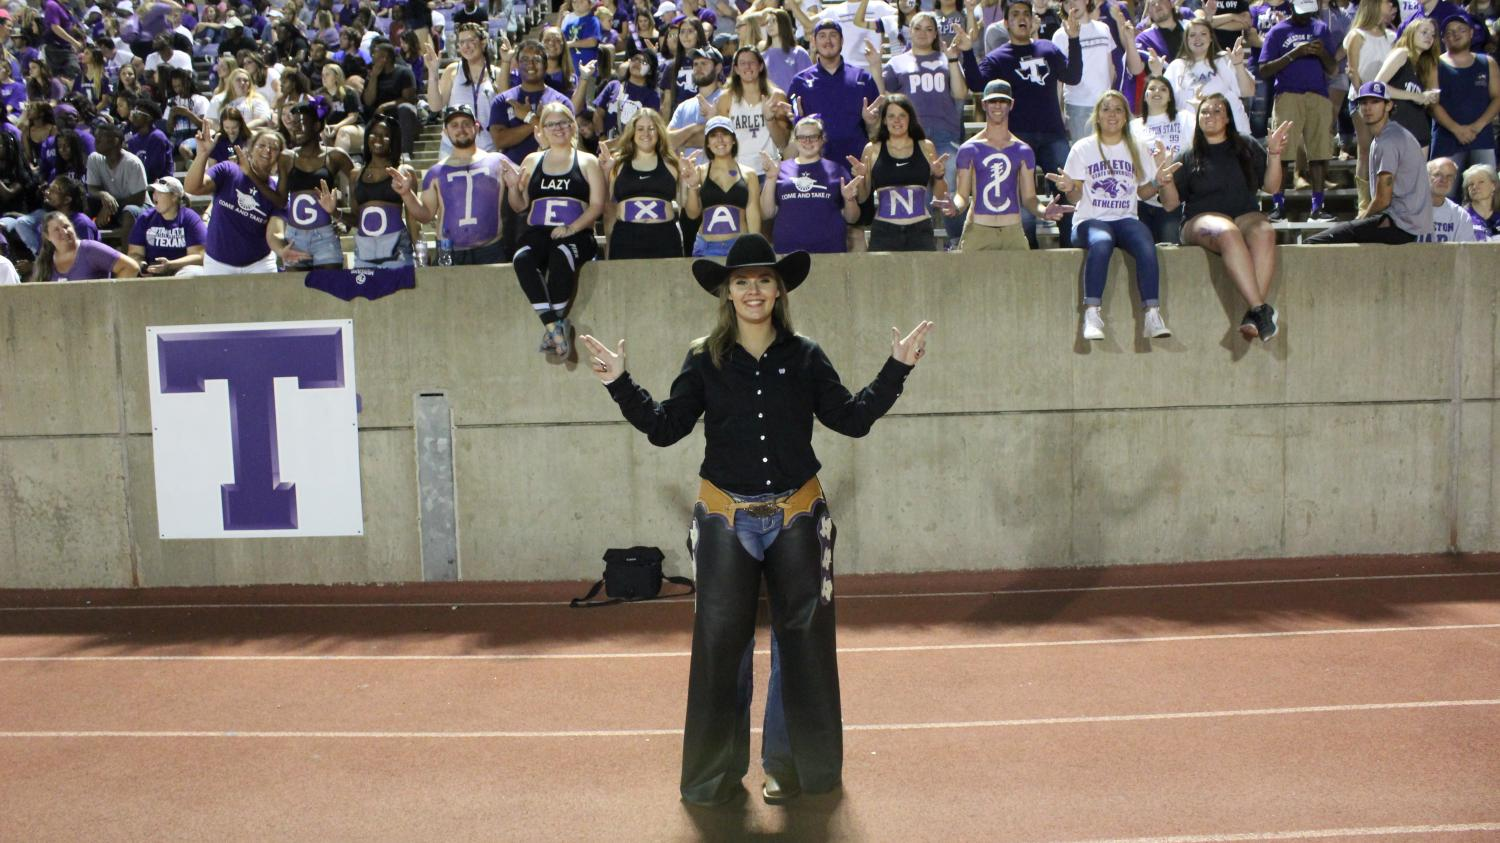 Gambrell, Texan Rider, throws her guns up with PANKUS while helping students to cheer on the Tarleton Texans towards their win last Saturday at Memorial Stadium.